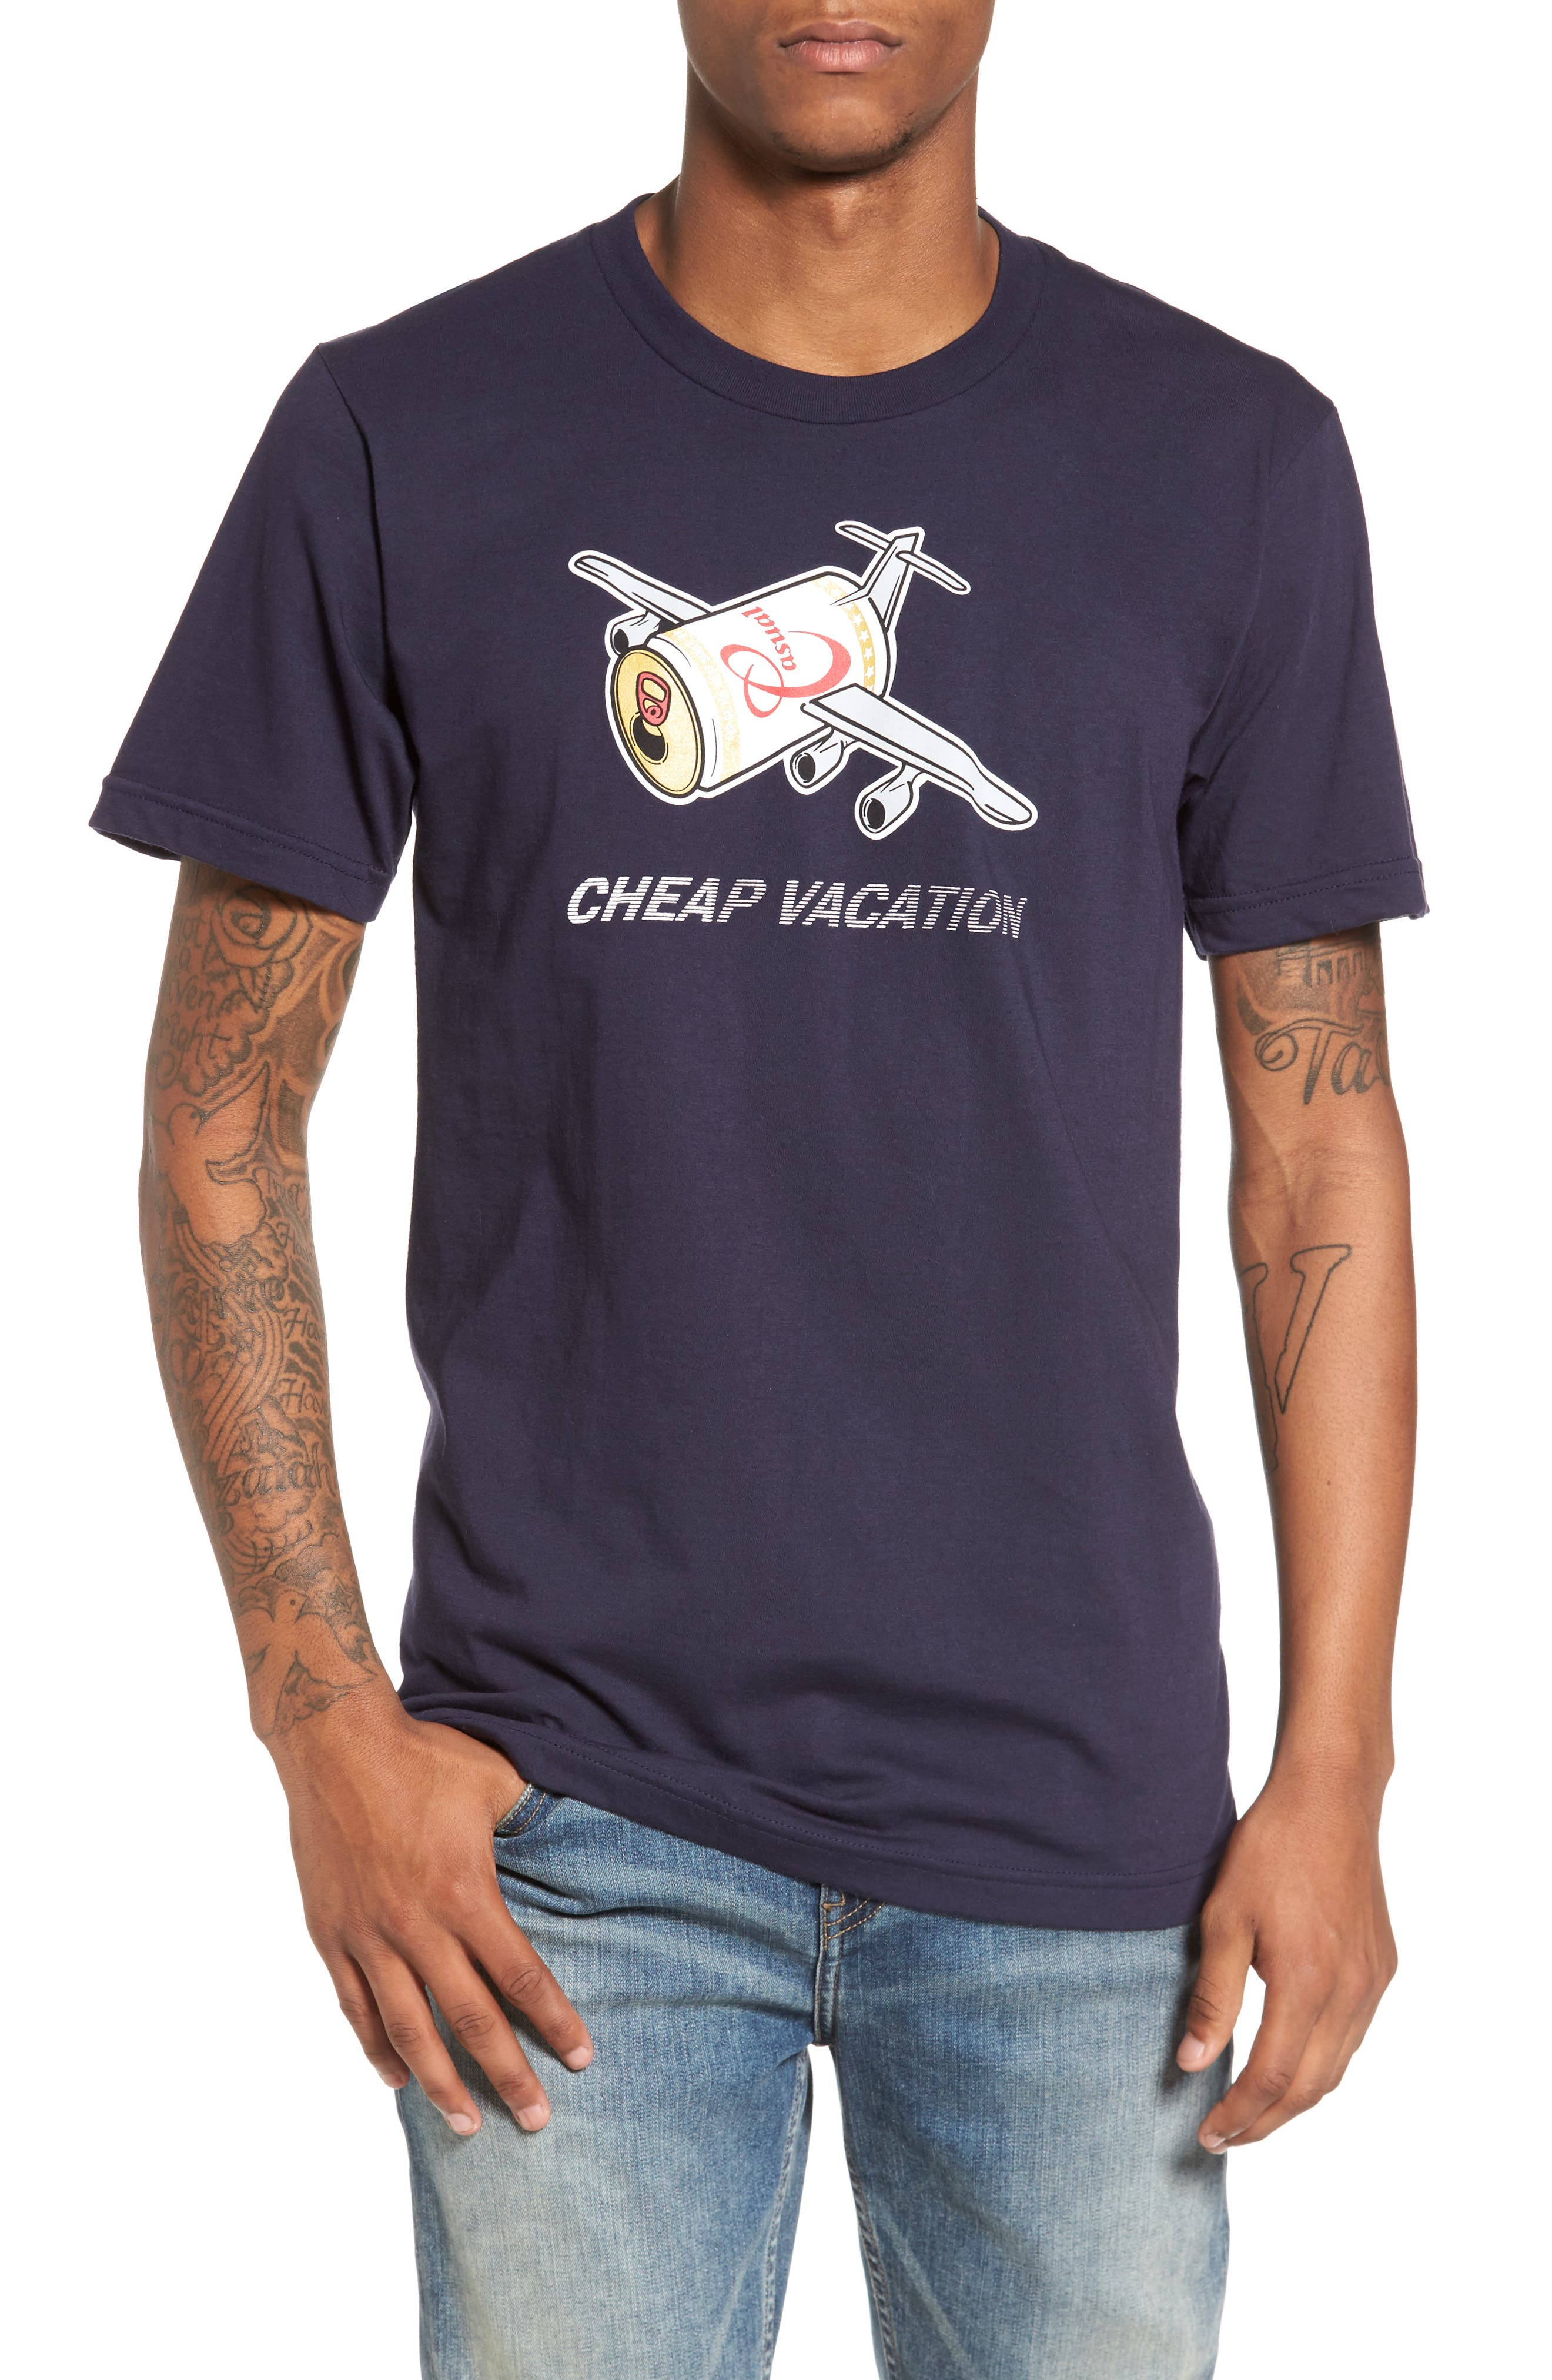 Main Image - Casual Industrees Cheap Vacation T-Shirt